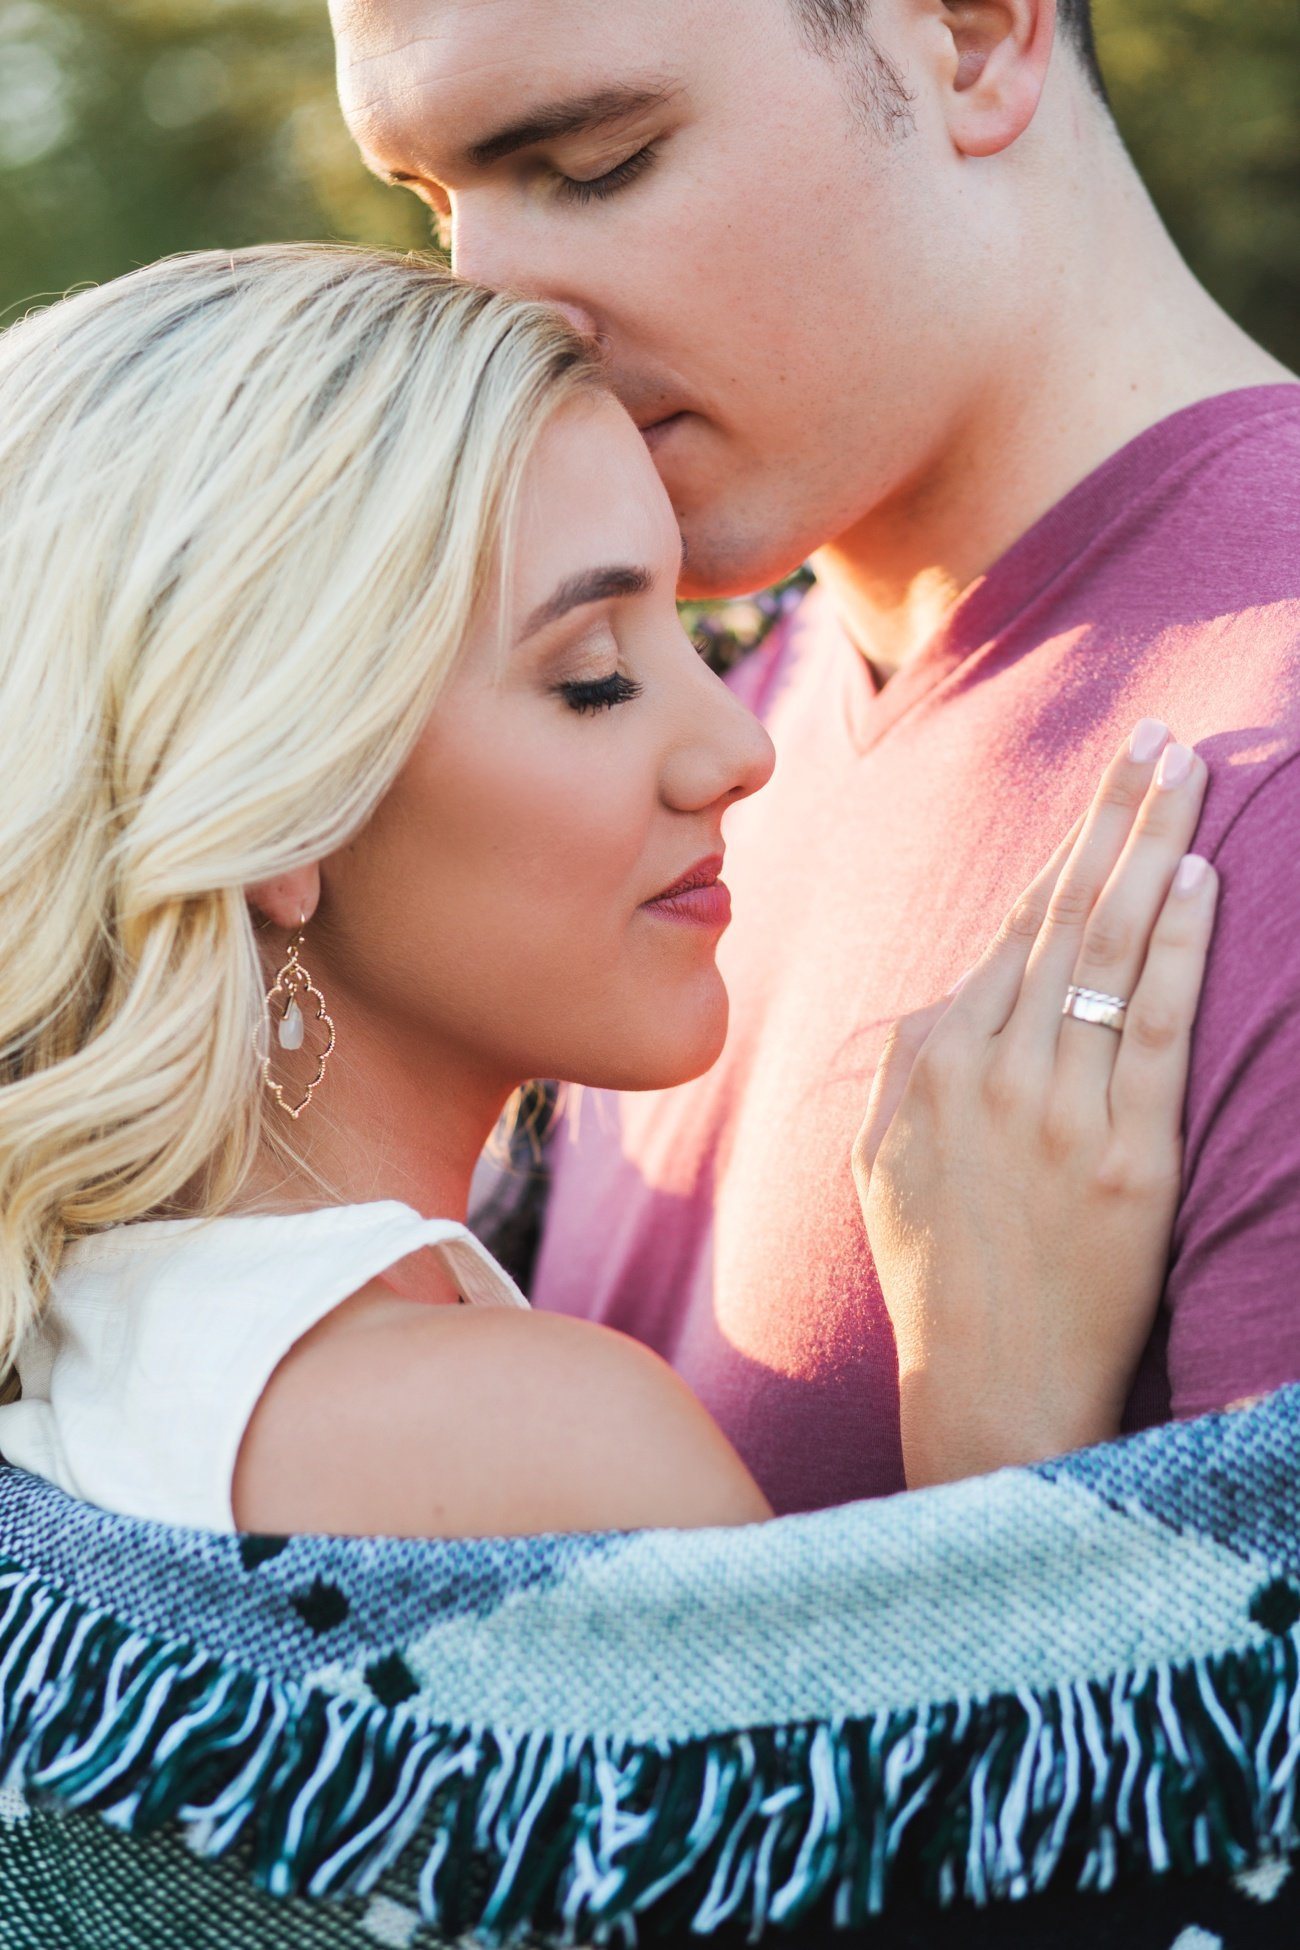 Engagements Colorado Springs Engagement Photographer Wedding Photos Pictures Portraits Arizona CO Denver Manitou Springs Scottsdale AZ 2016-06-27_0092